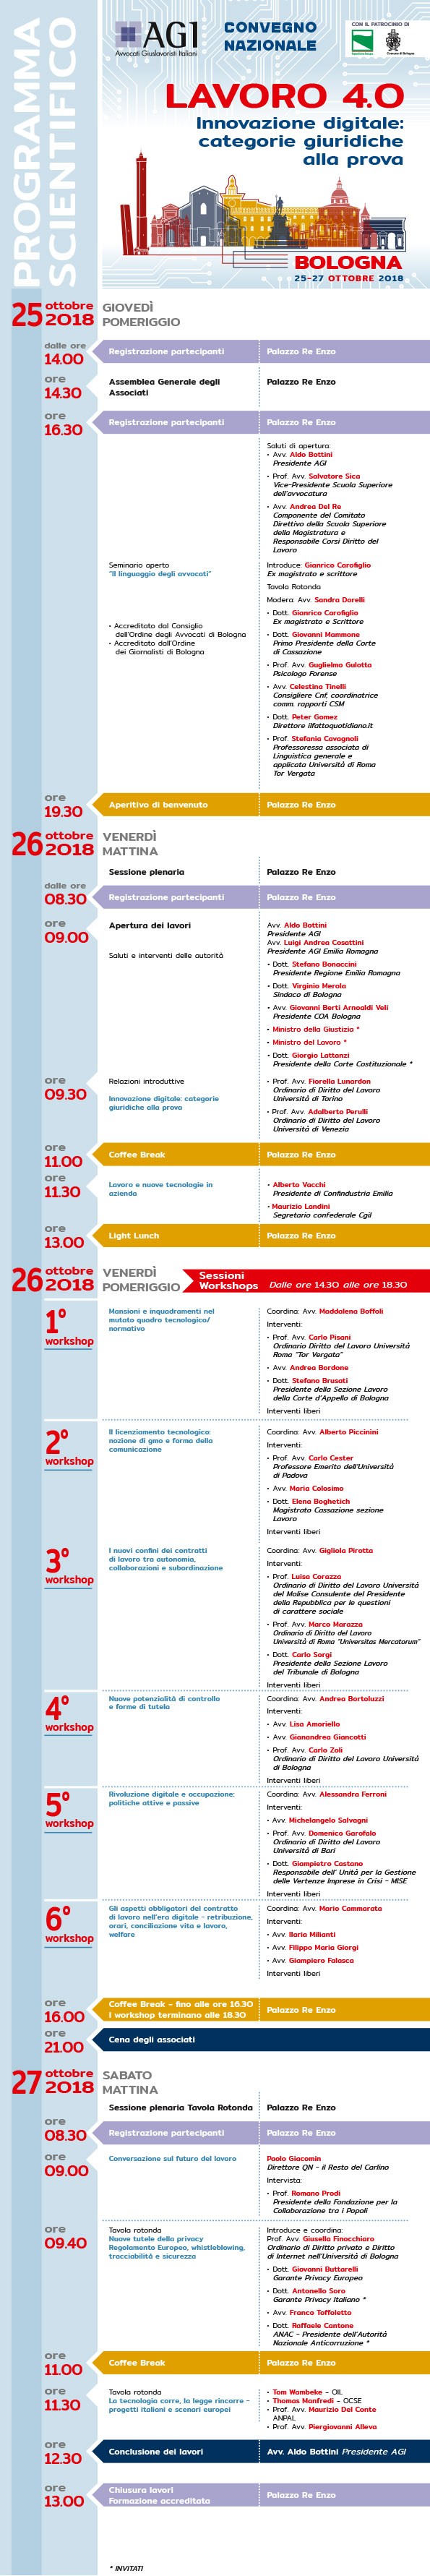 AGI2018_Programma-Scientifico